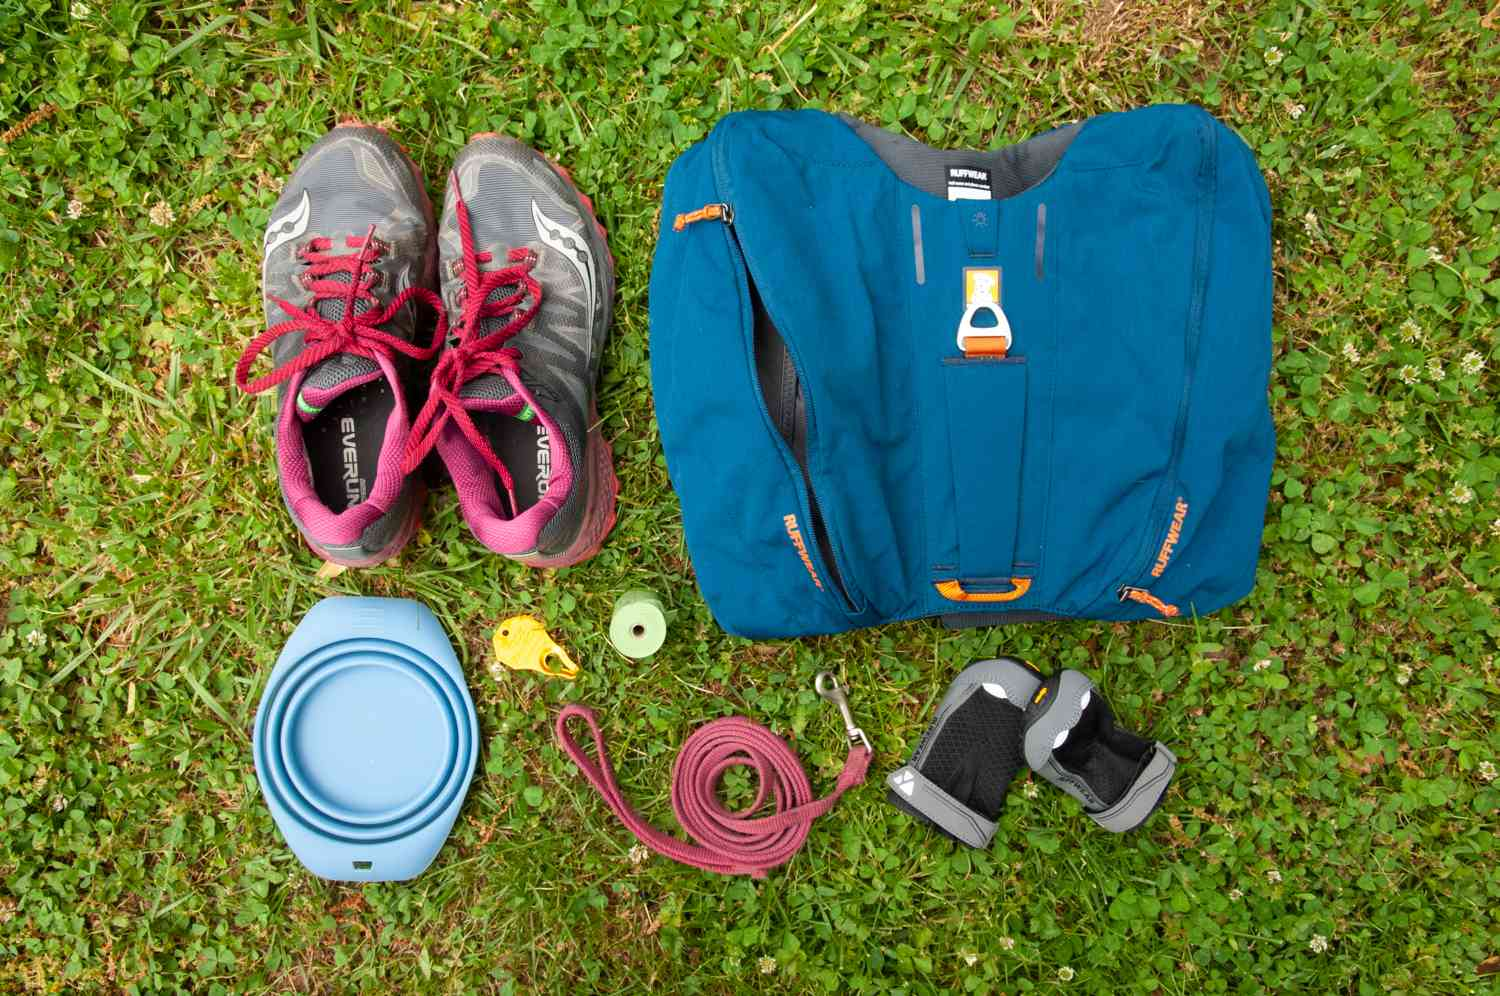 essential gear for hiking with dogs includes a good leash and water bowl